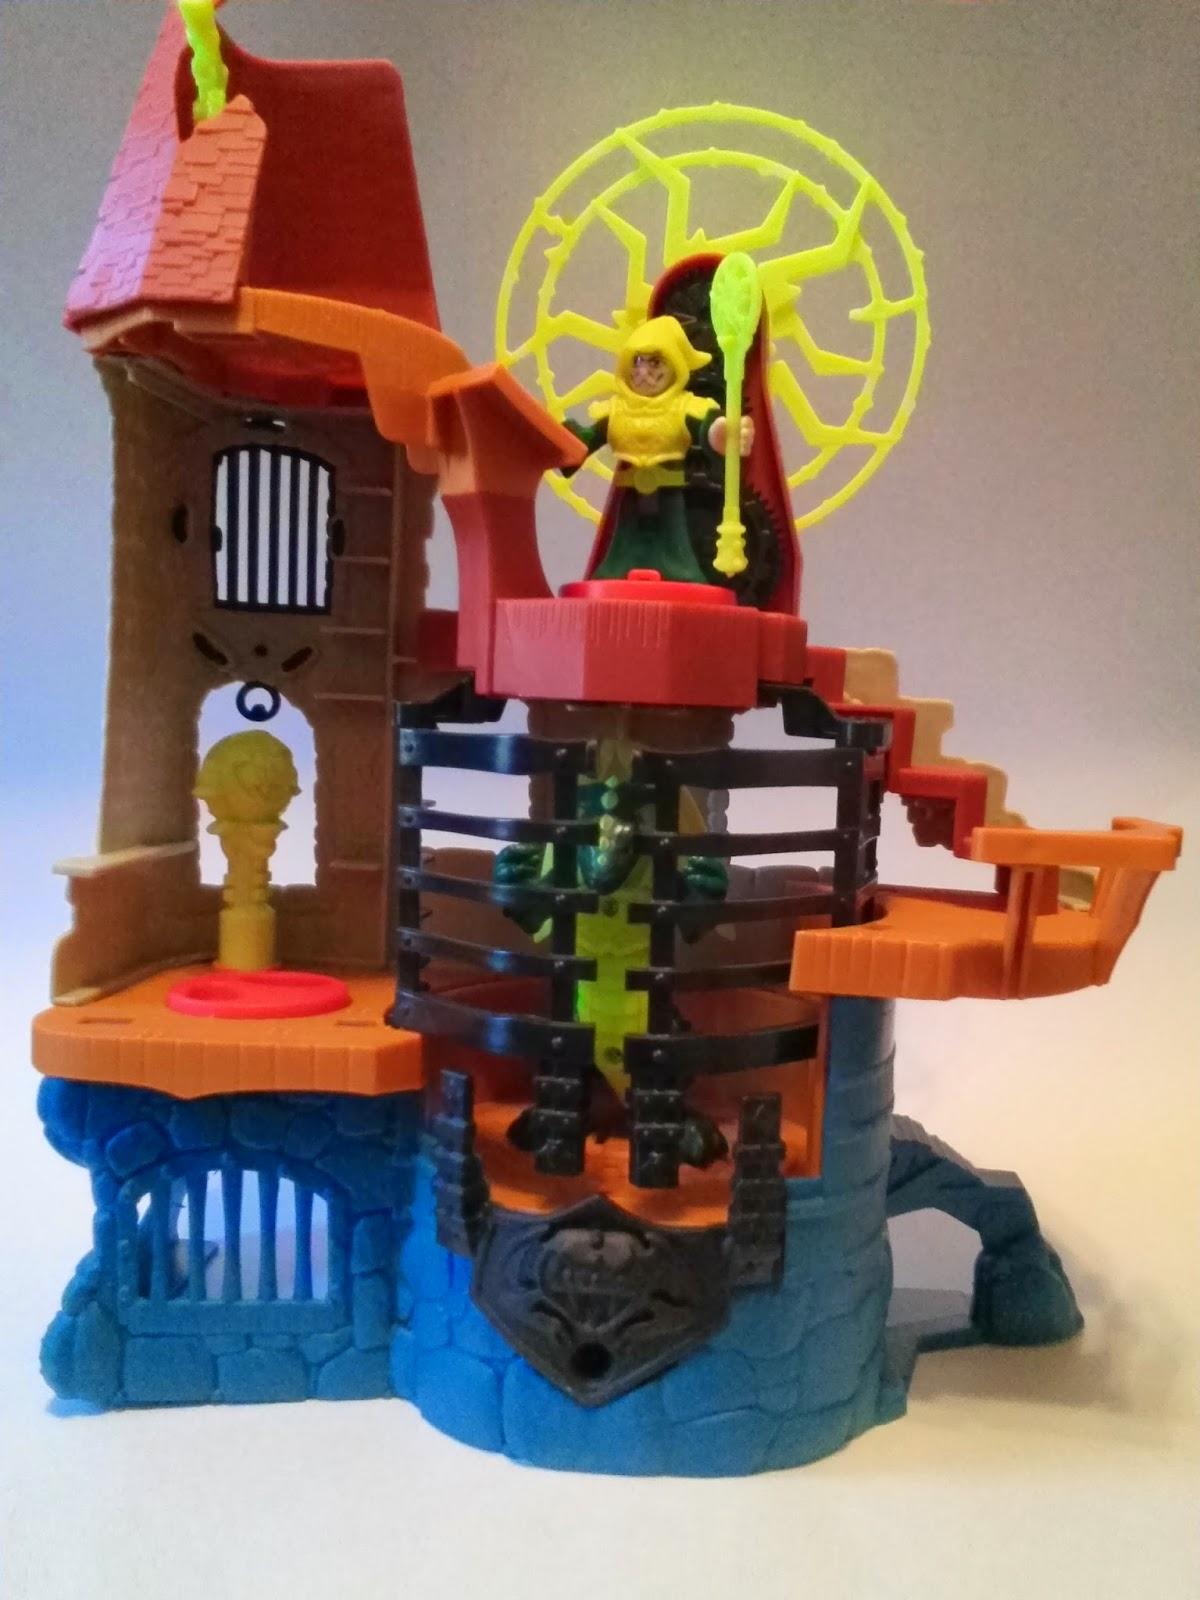 That Figures REVIEW Imaginext Castle Wizard Tower